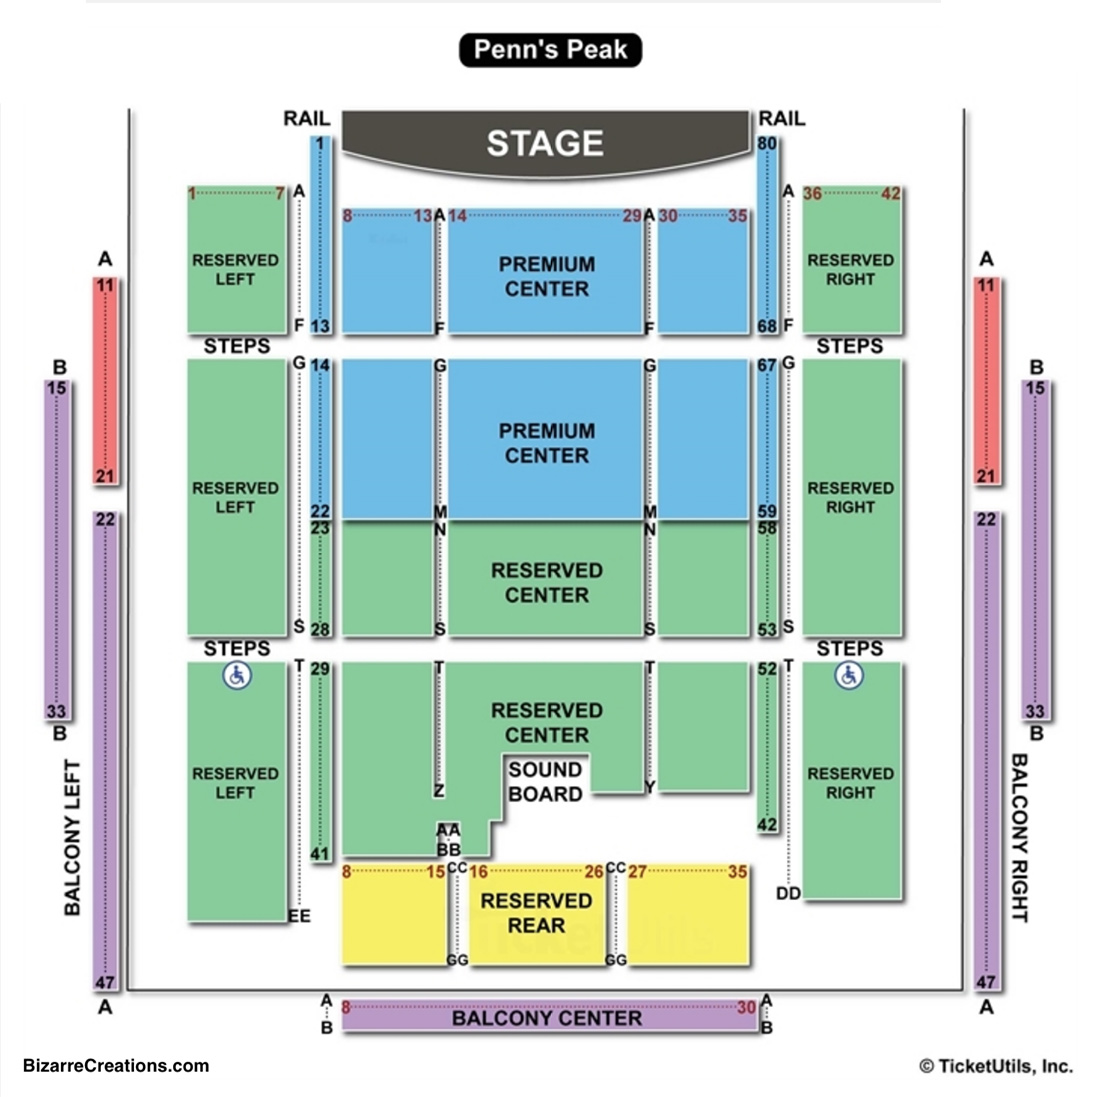 penns peak seating chart seating charts amp tickets